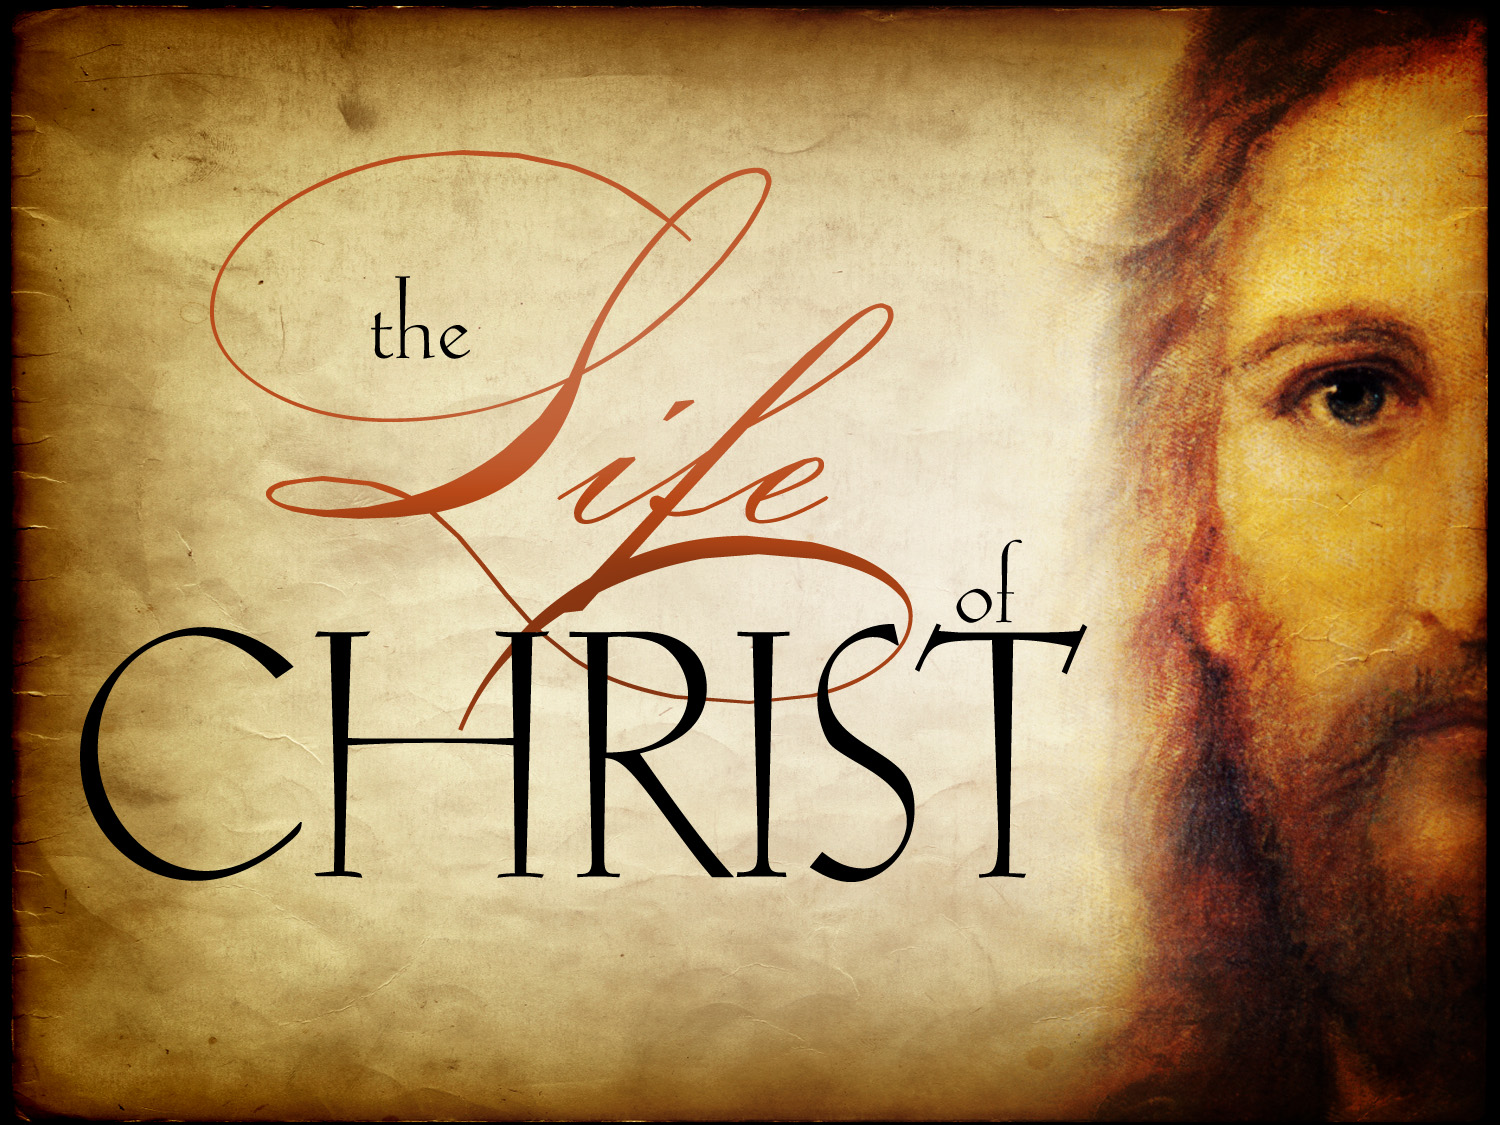 biography of jesus christ To be a true disciple of christ means not only to be an admirer and follower, but also to obey and imitate him may this lesson help you toward that goal.